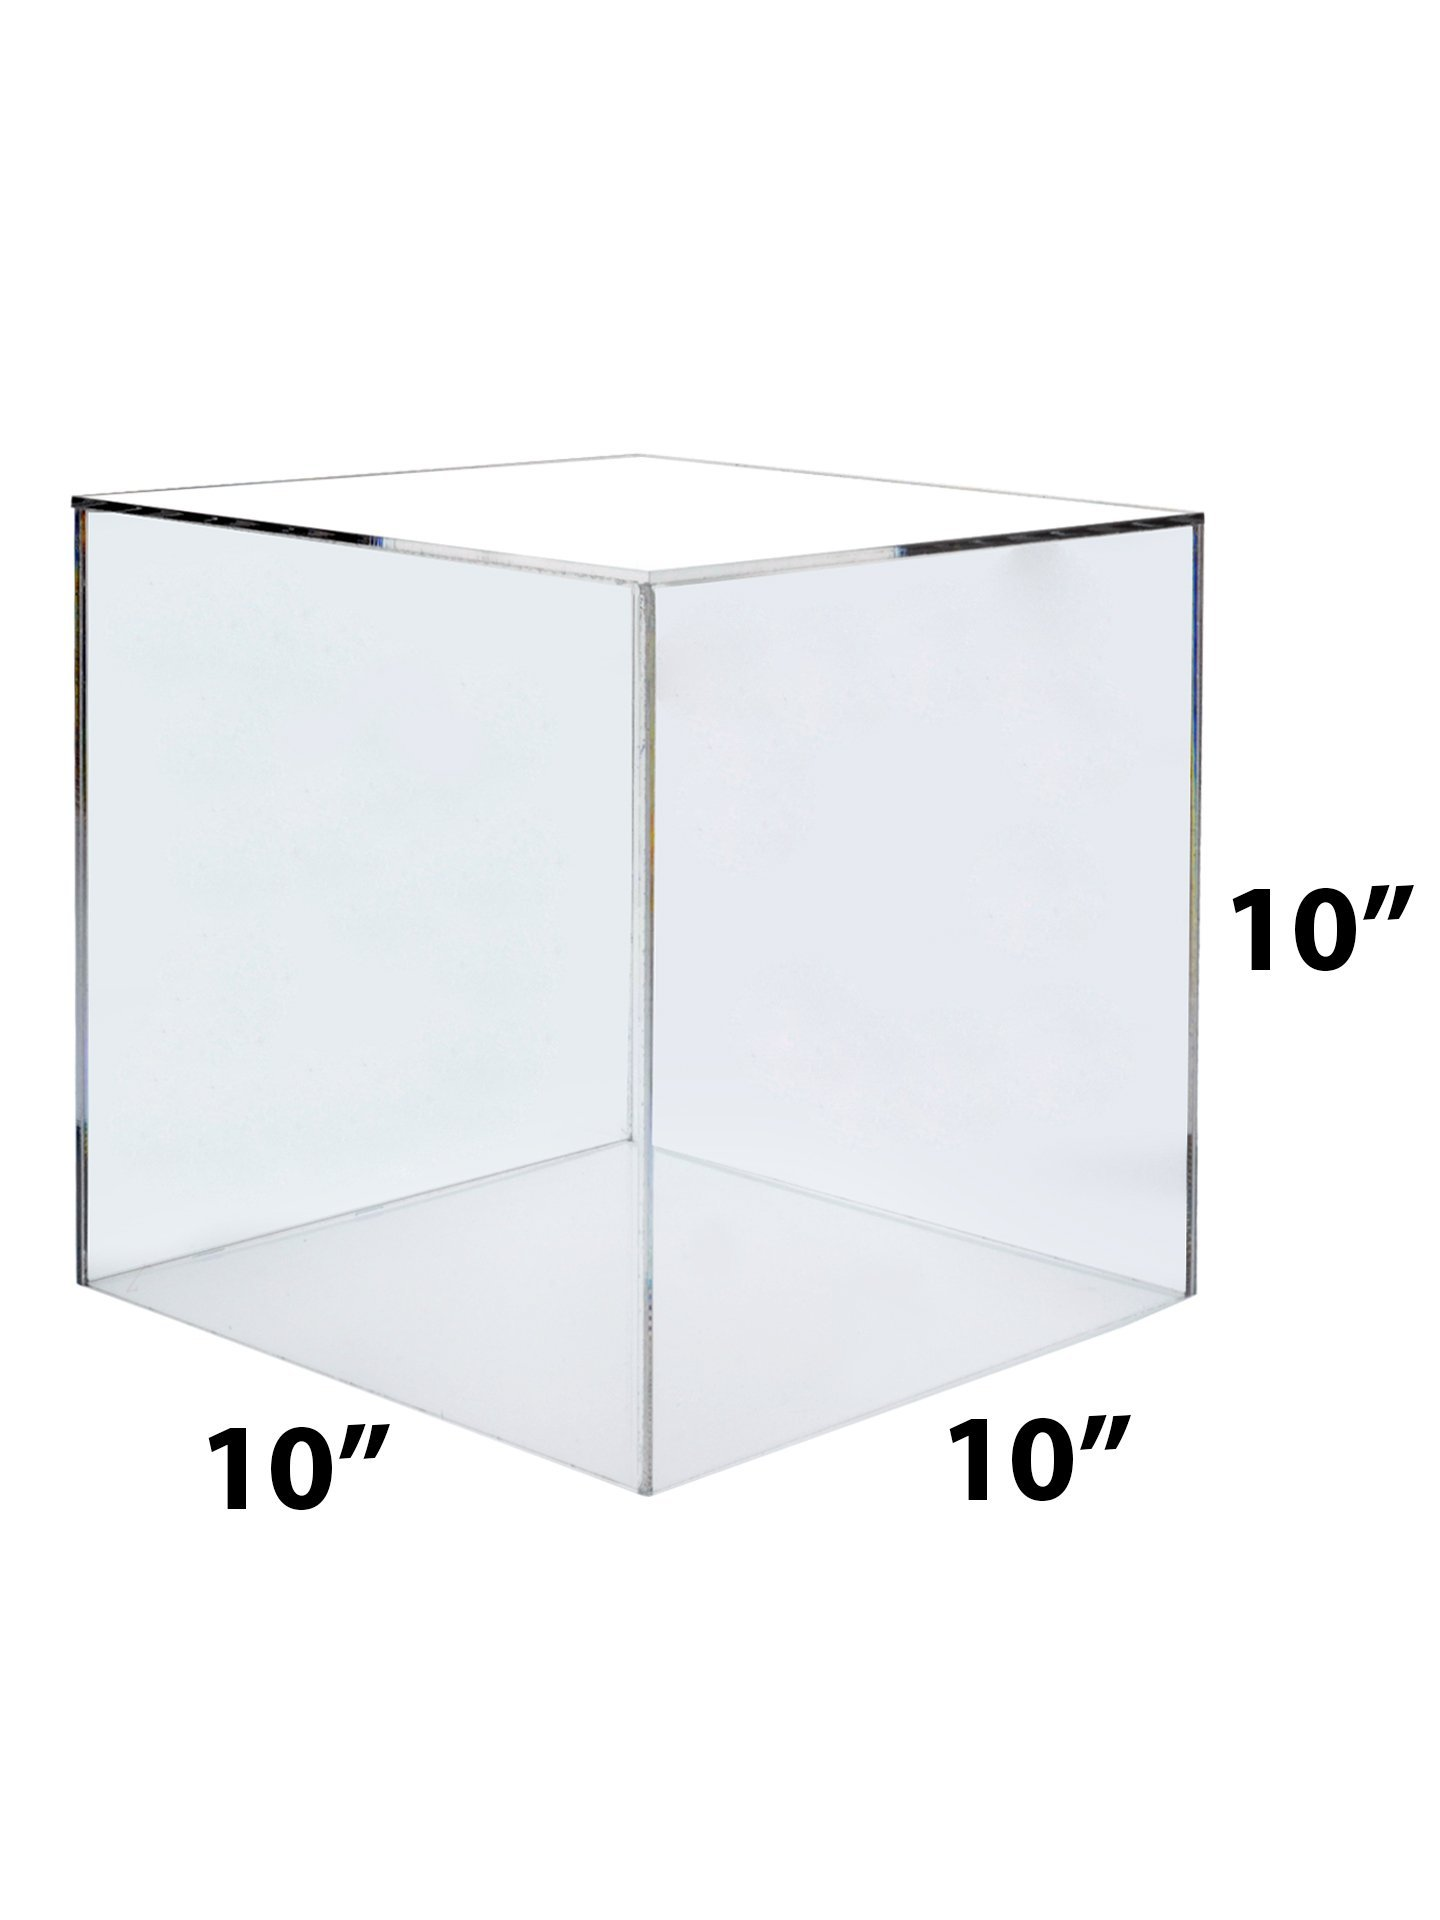 Marketing Holders Large Acrylic Display Box Cube Toys Trinkets Collectible Items Safety Dust Cover Acrylic 5 Sided Show Case Art Easel Pedestal Display (5, 10''w x 10''h) by Marketing Holders (Image #2)